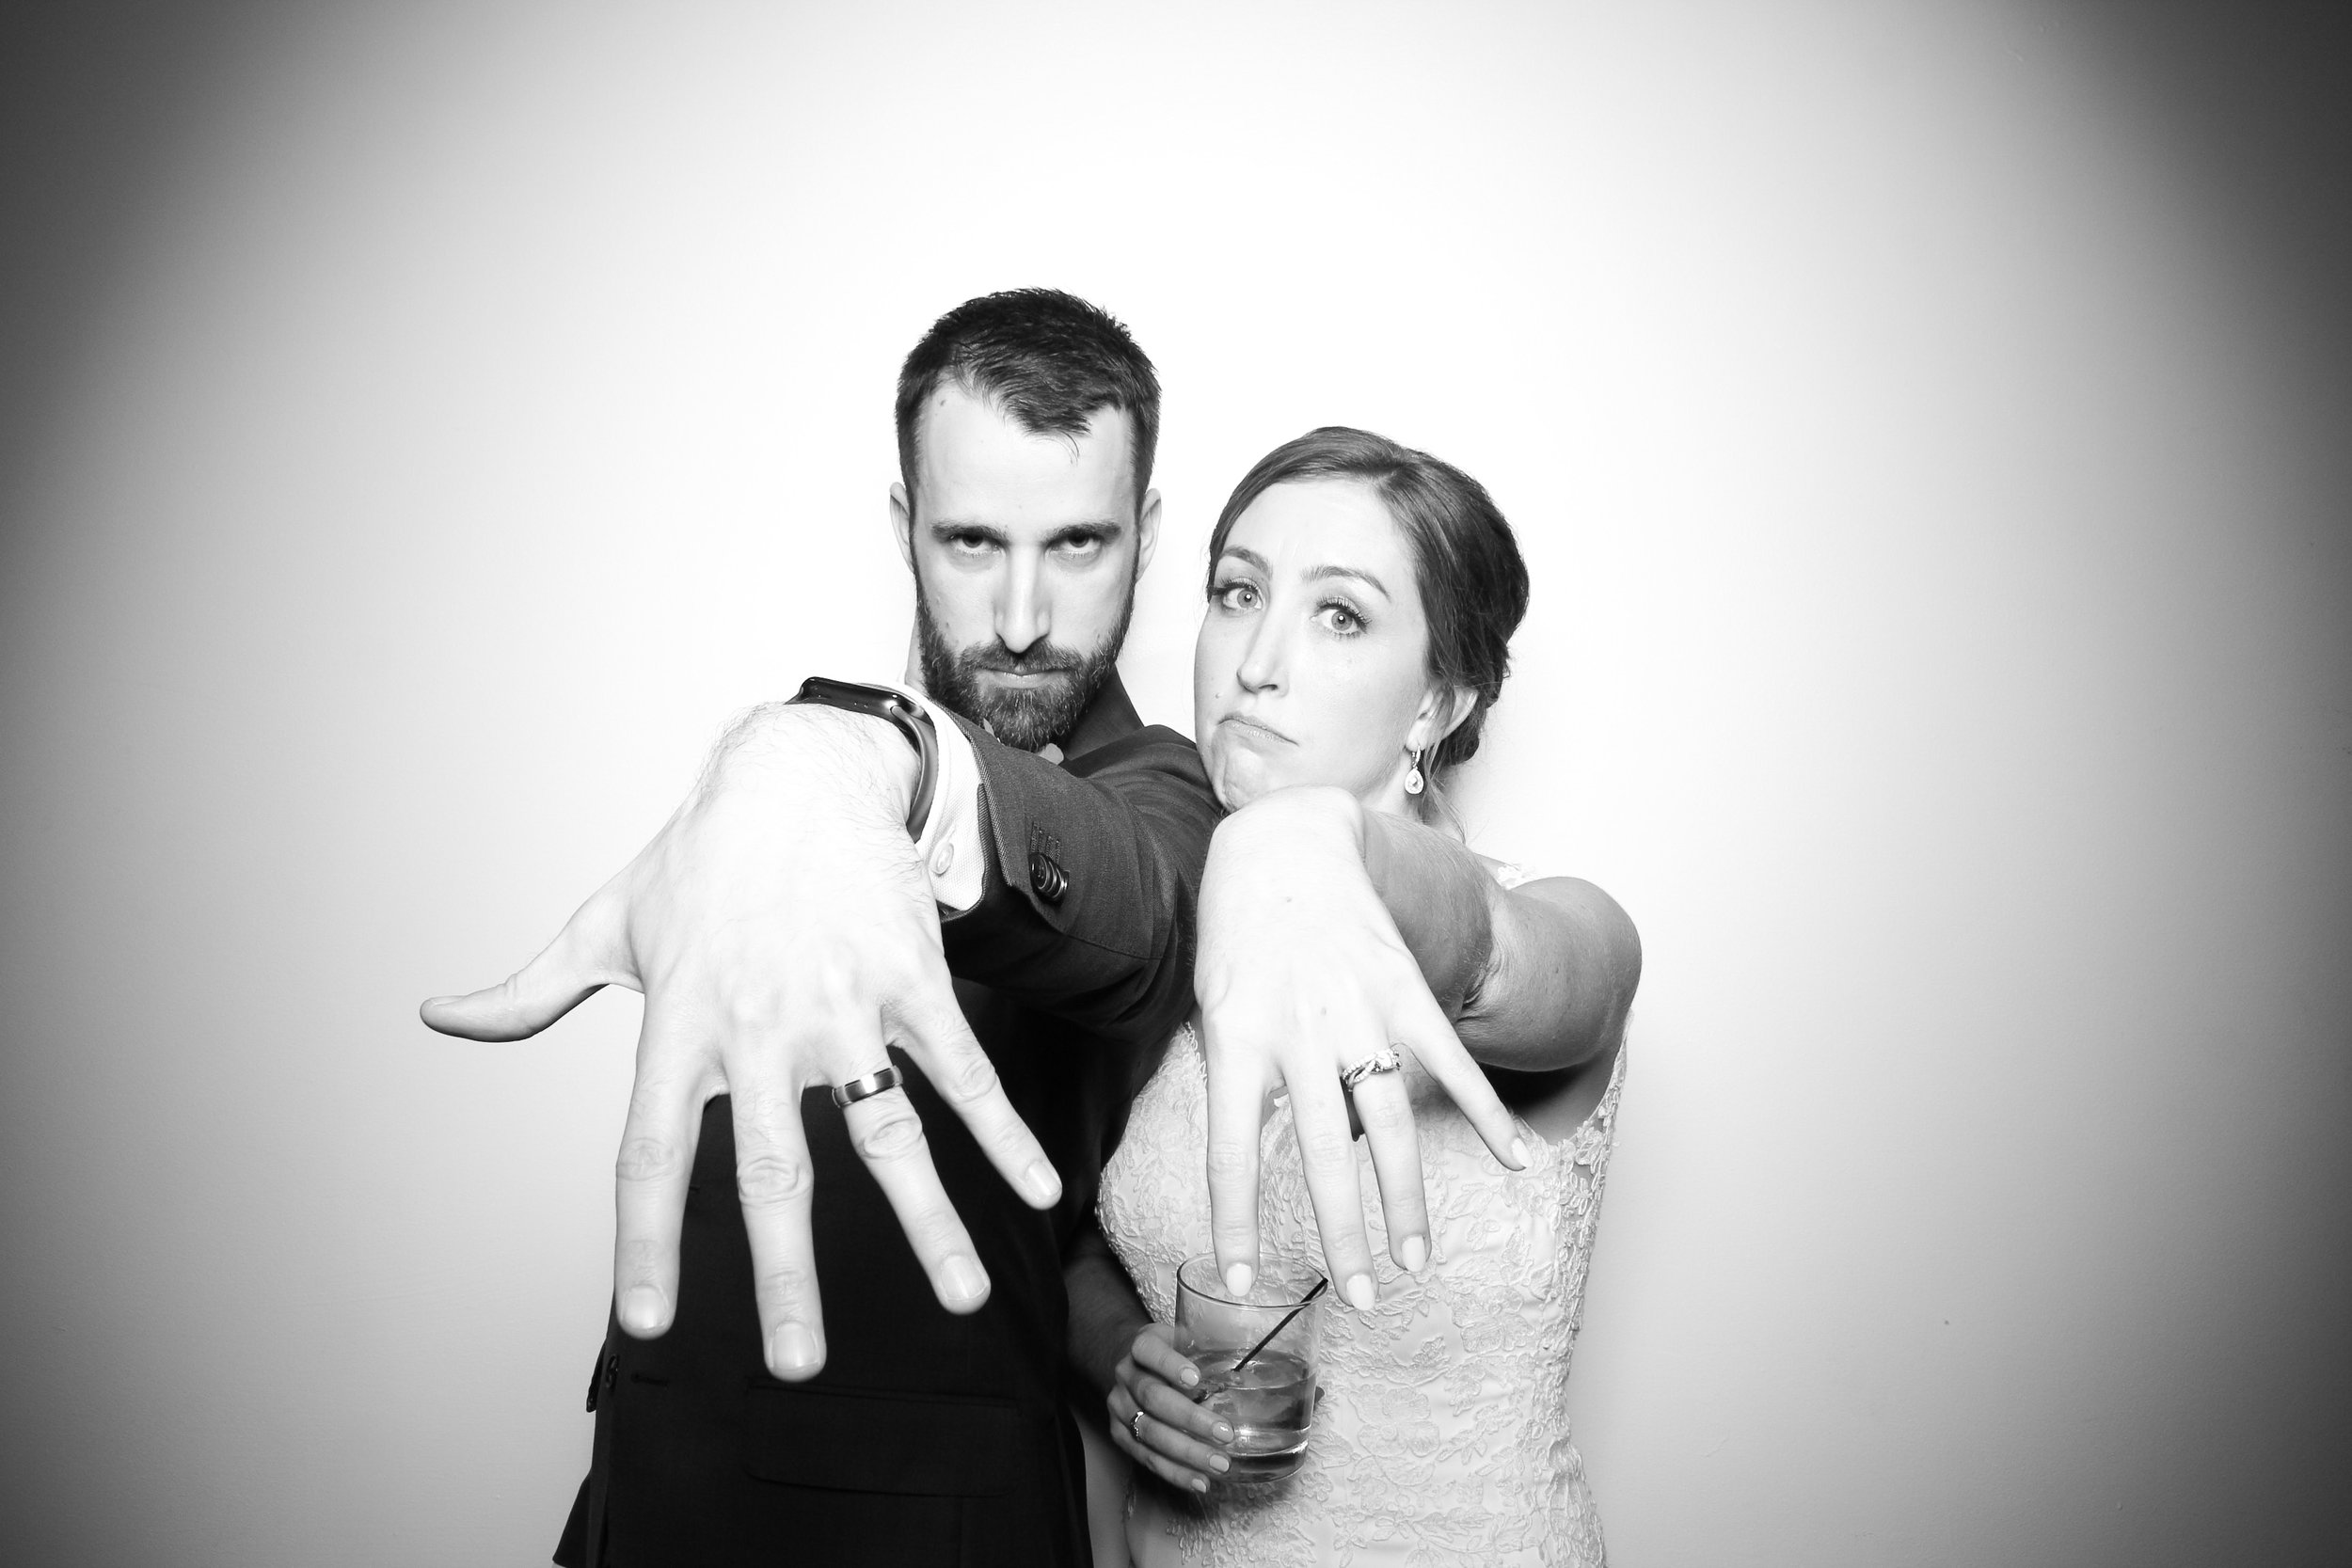 Chicago_Vintage_Wedding_Photobooth_Ravenswood_18.jpg